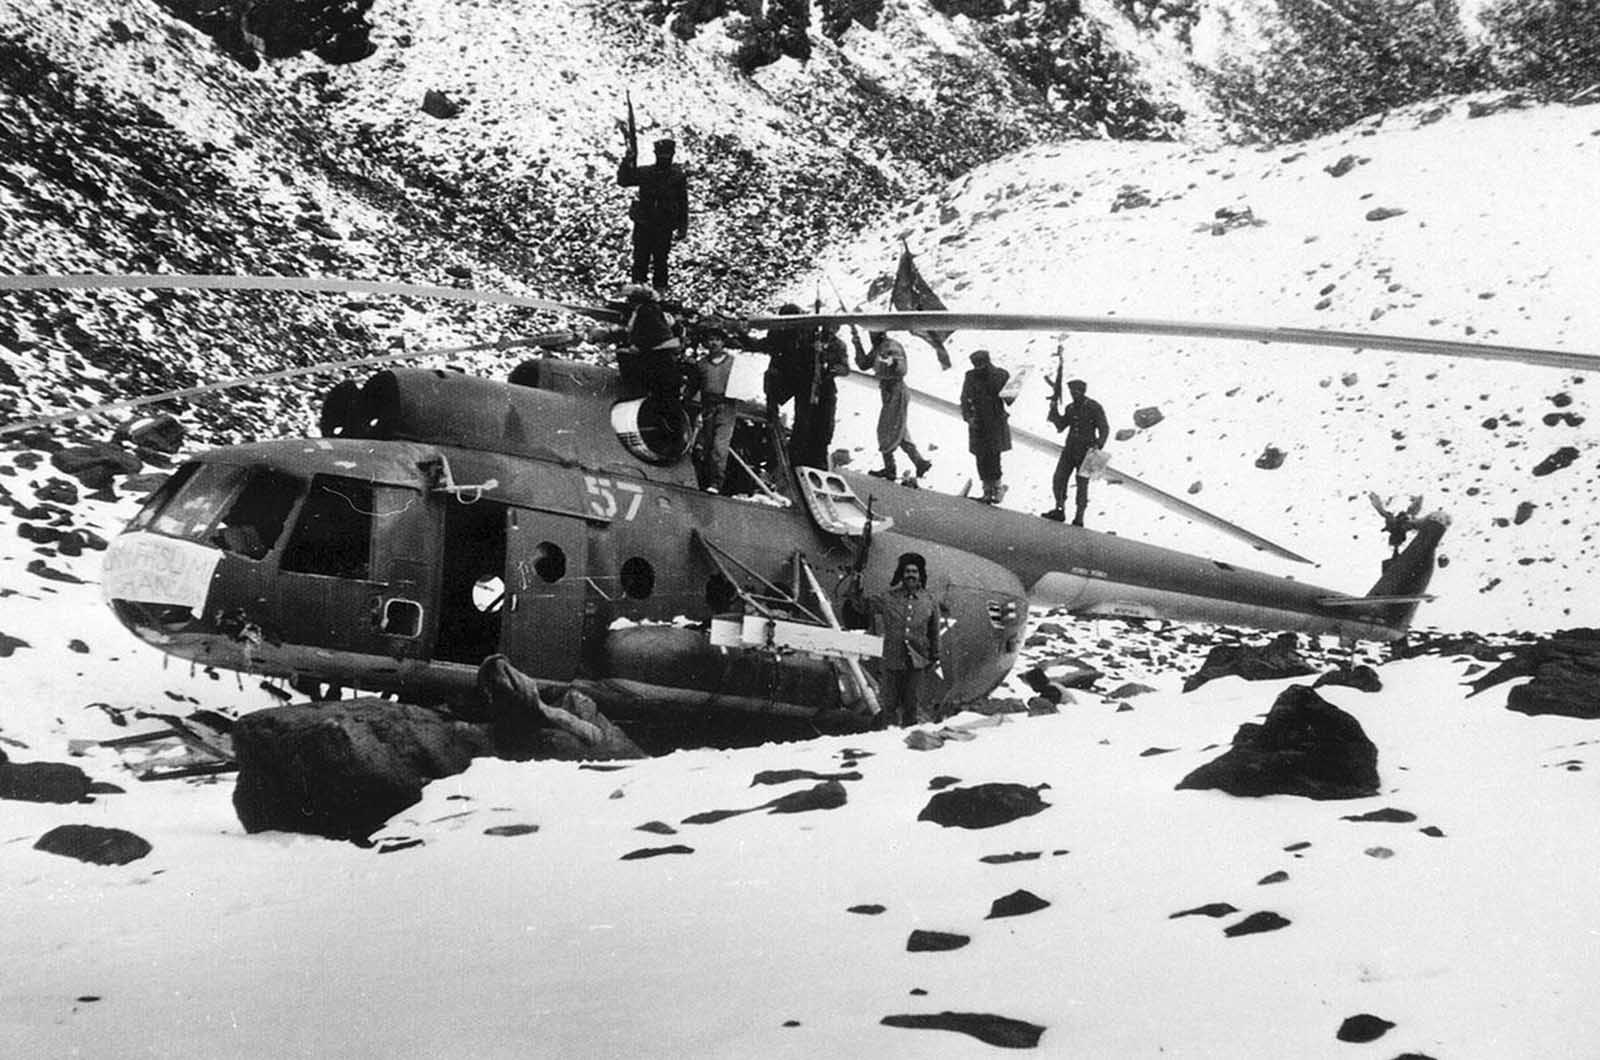 Afghan guerrillas atop a downed Soviet Mi-8 transport helicopter, near the Salang Highway, a vital supply route north from Kabul to the Soviet border, January 12, 1981.